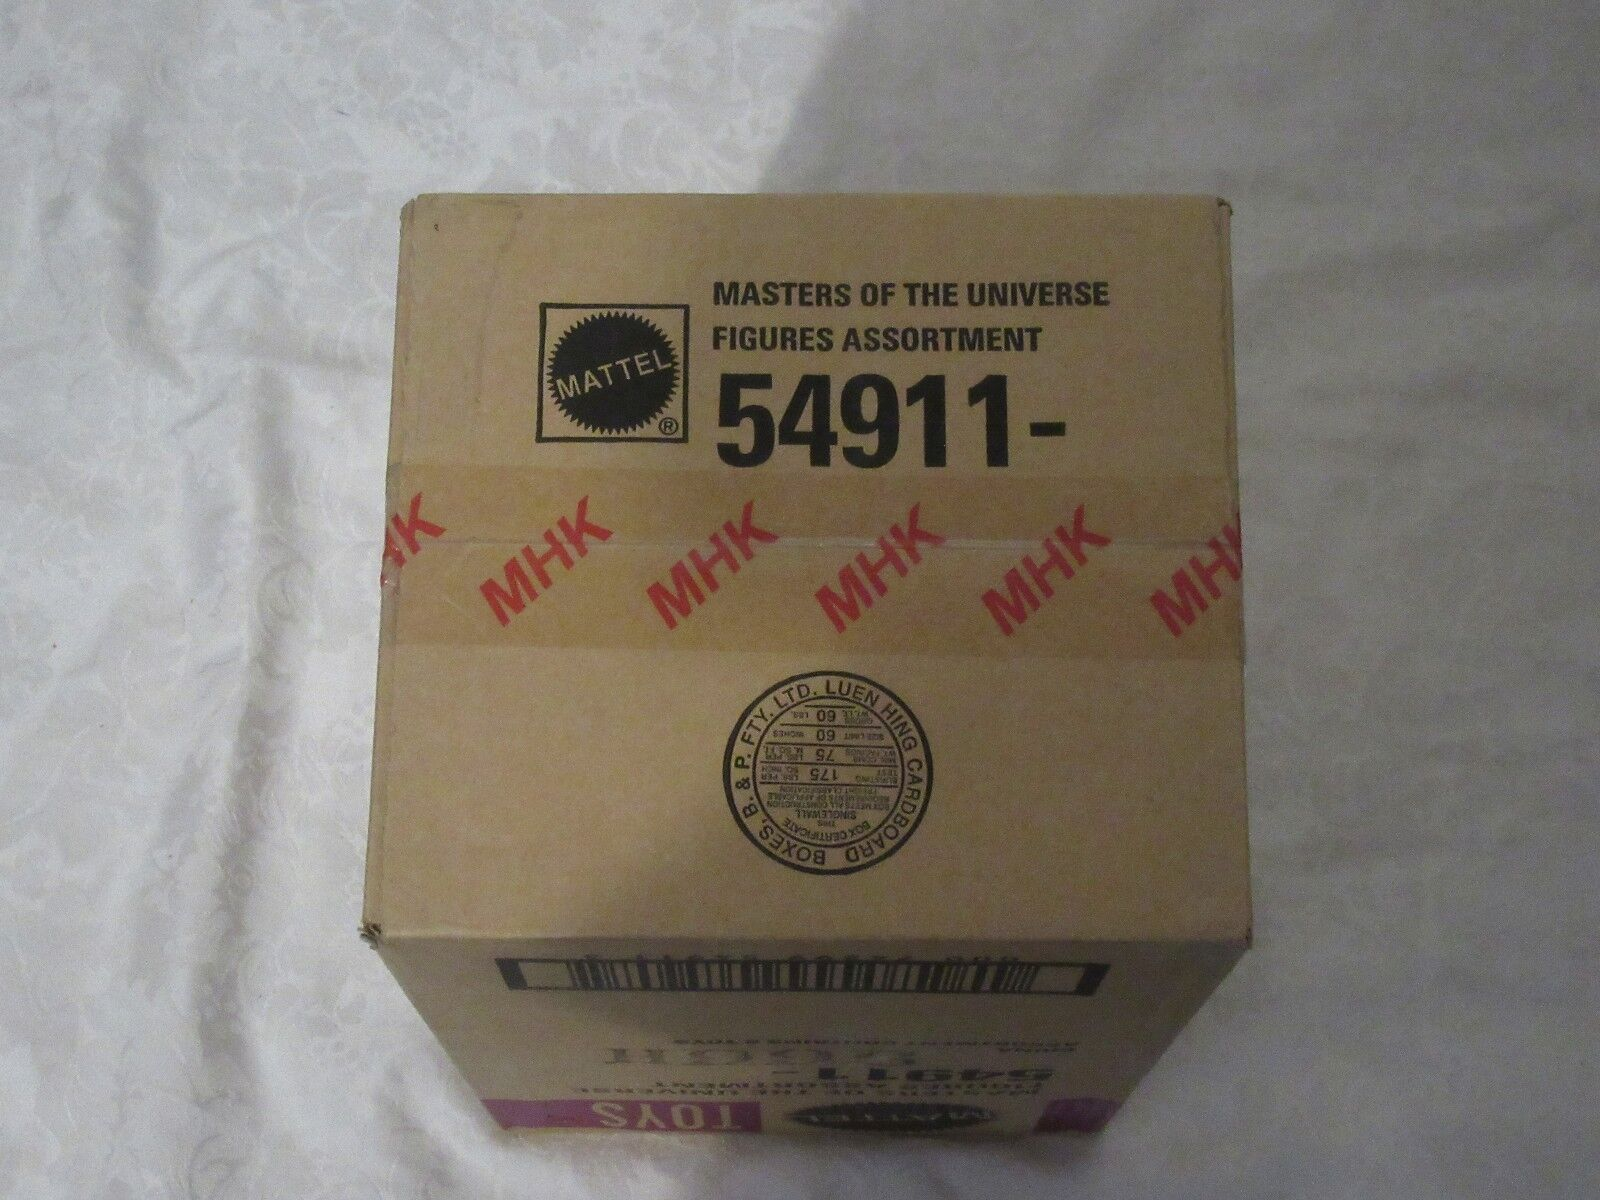 Masters of the Universe MOTU 200X Sealed Case 54911-966H 54911-966H 54911-966H Figure Assortment of 6 efce03